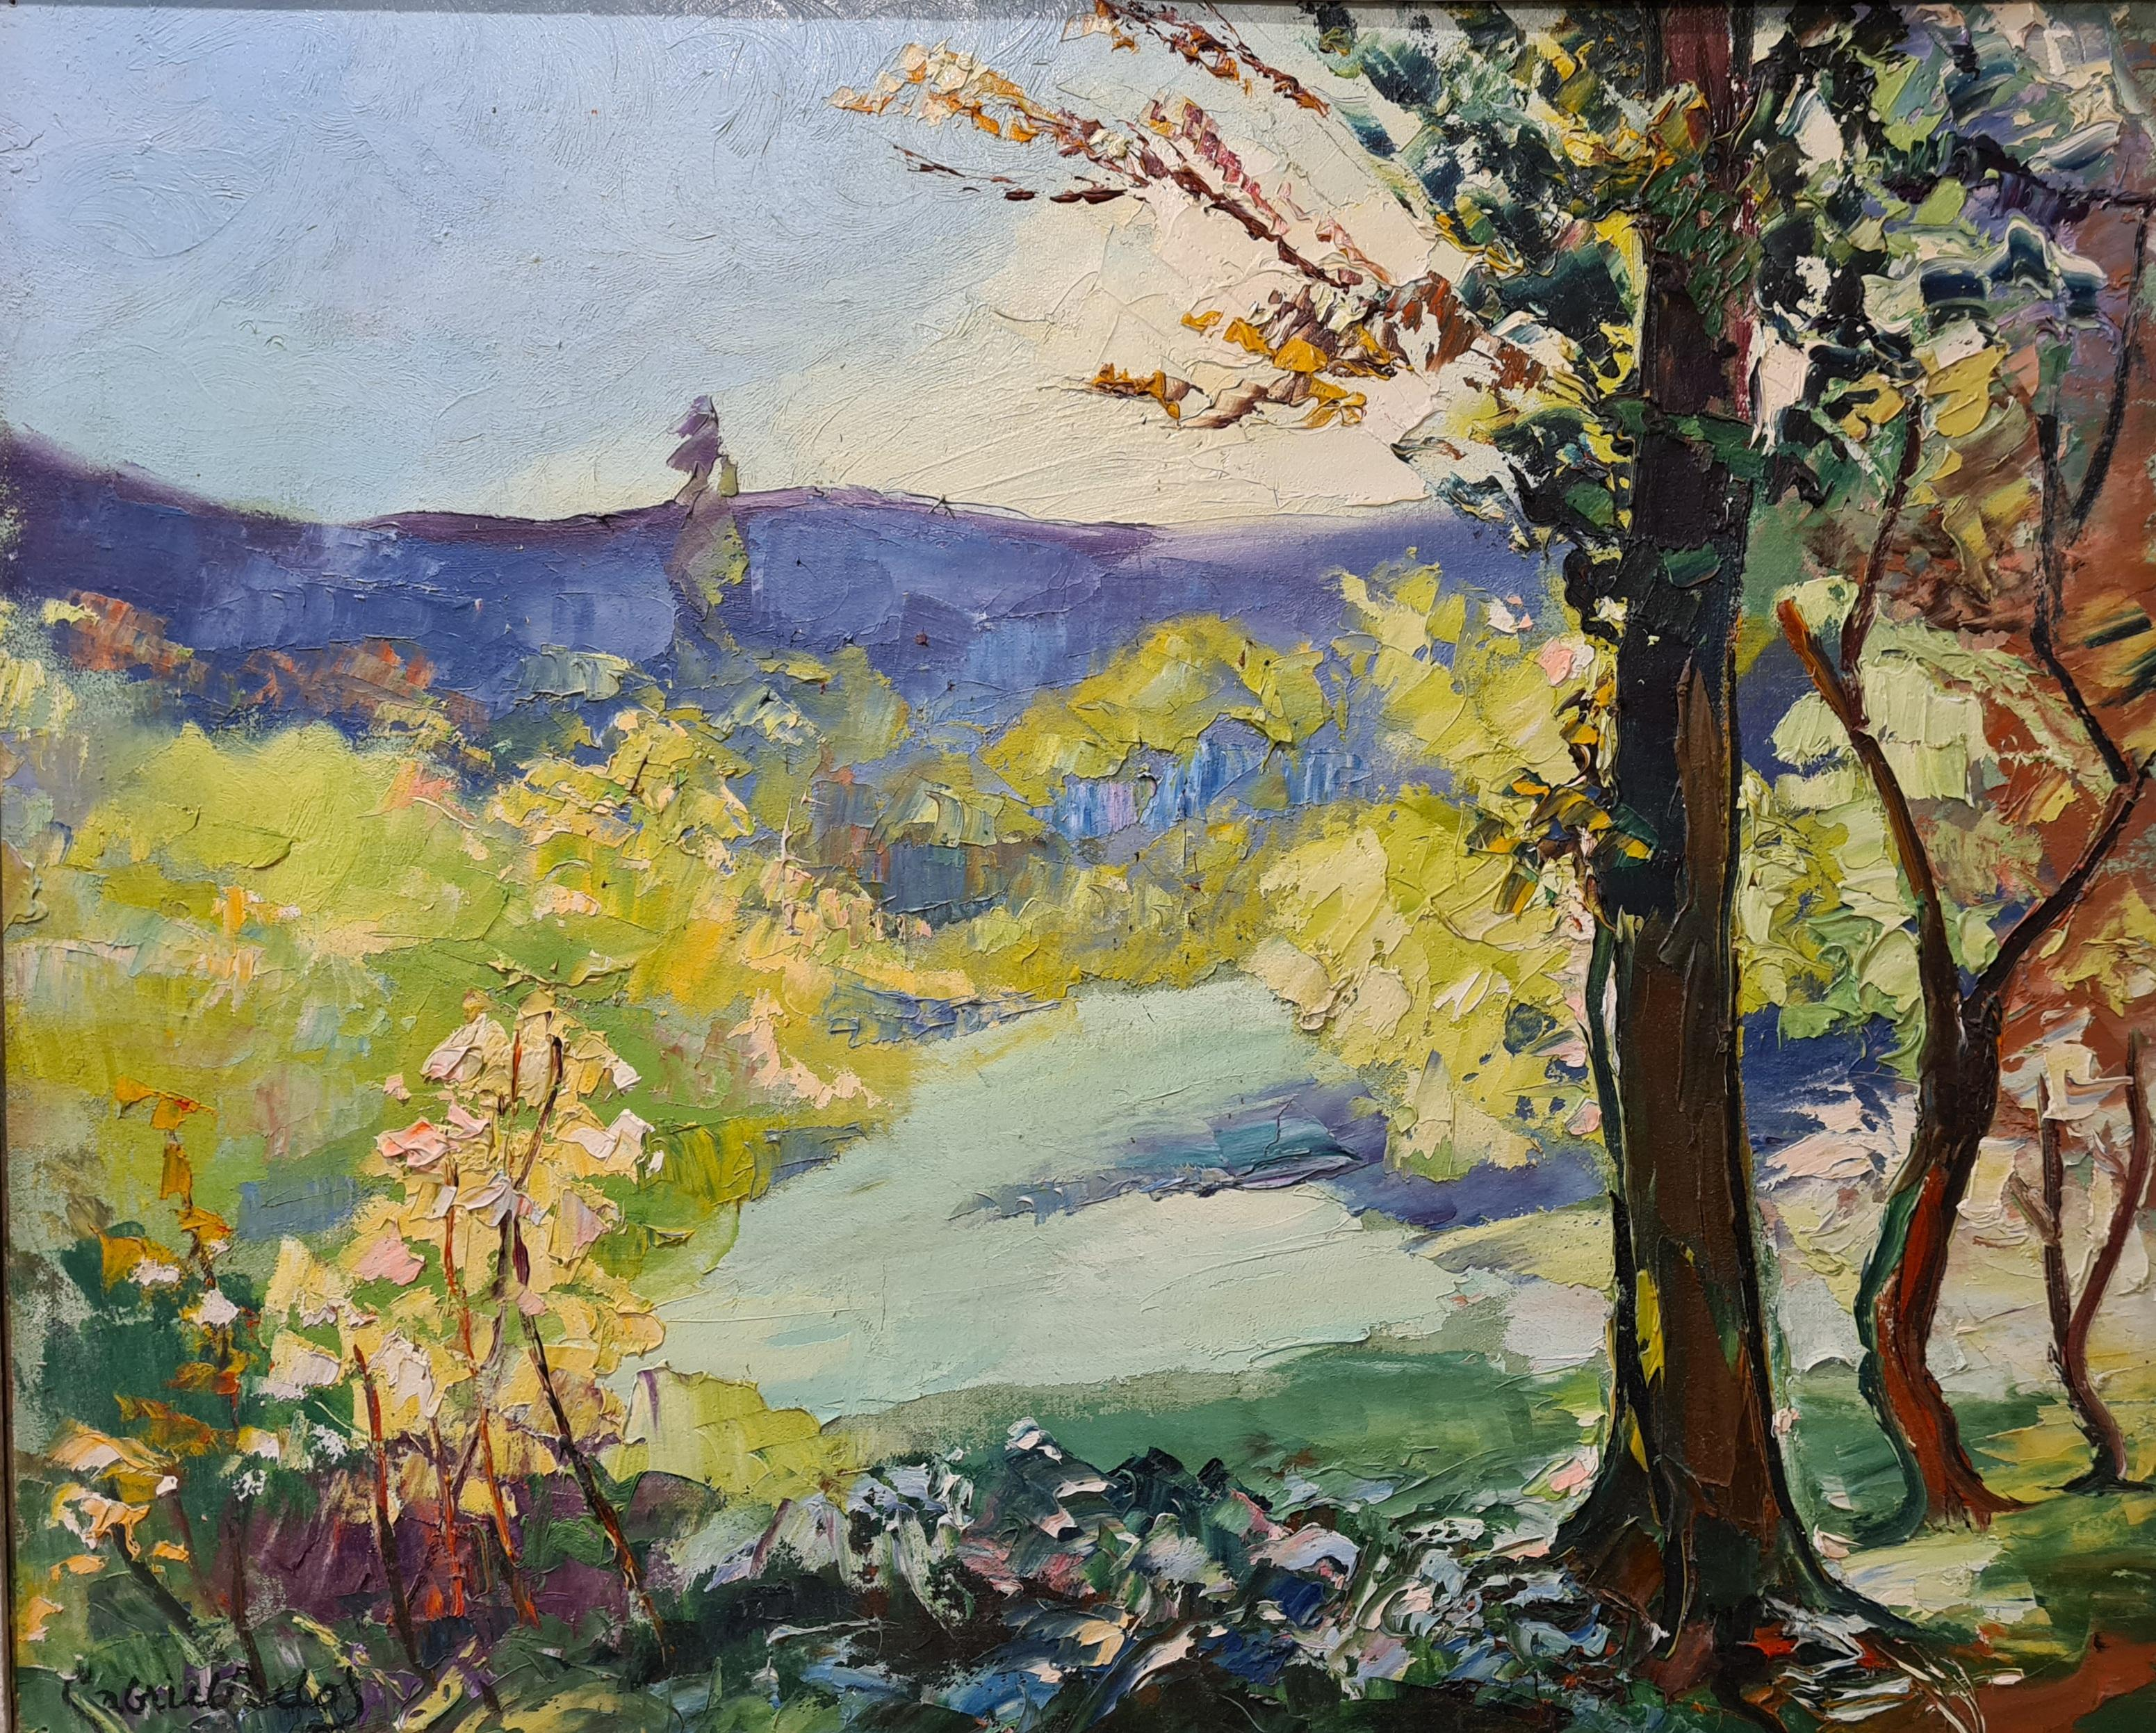 Pastoral Scene, Early 20th Century Fauvist Oil on Canvas.